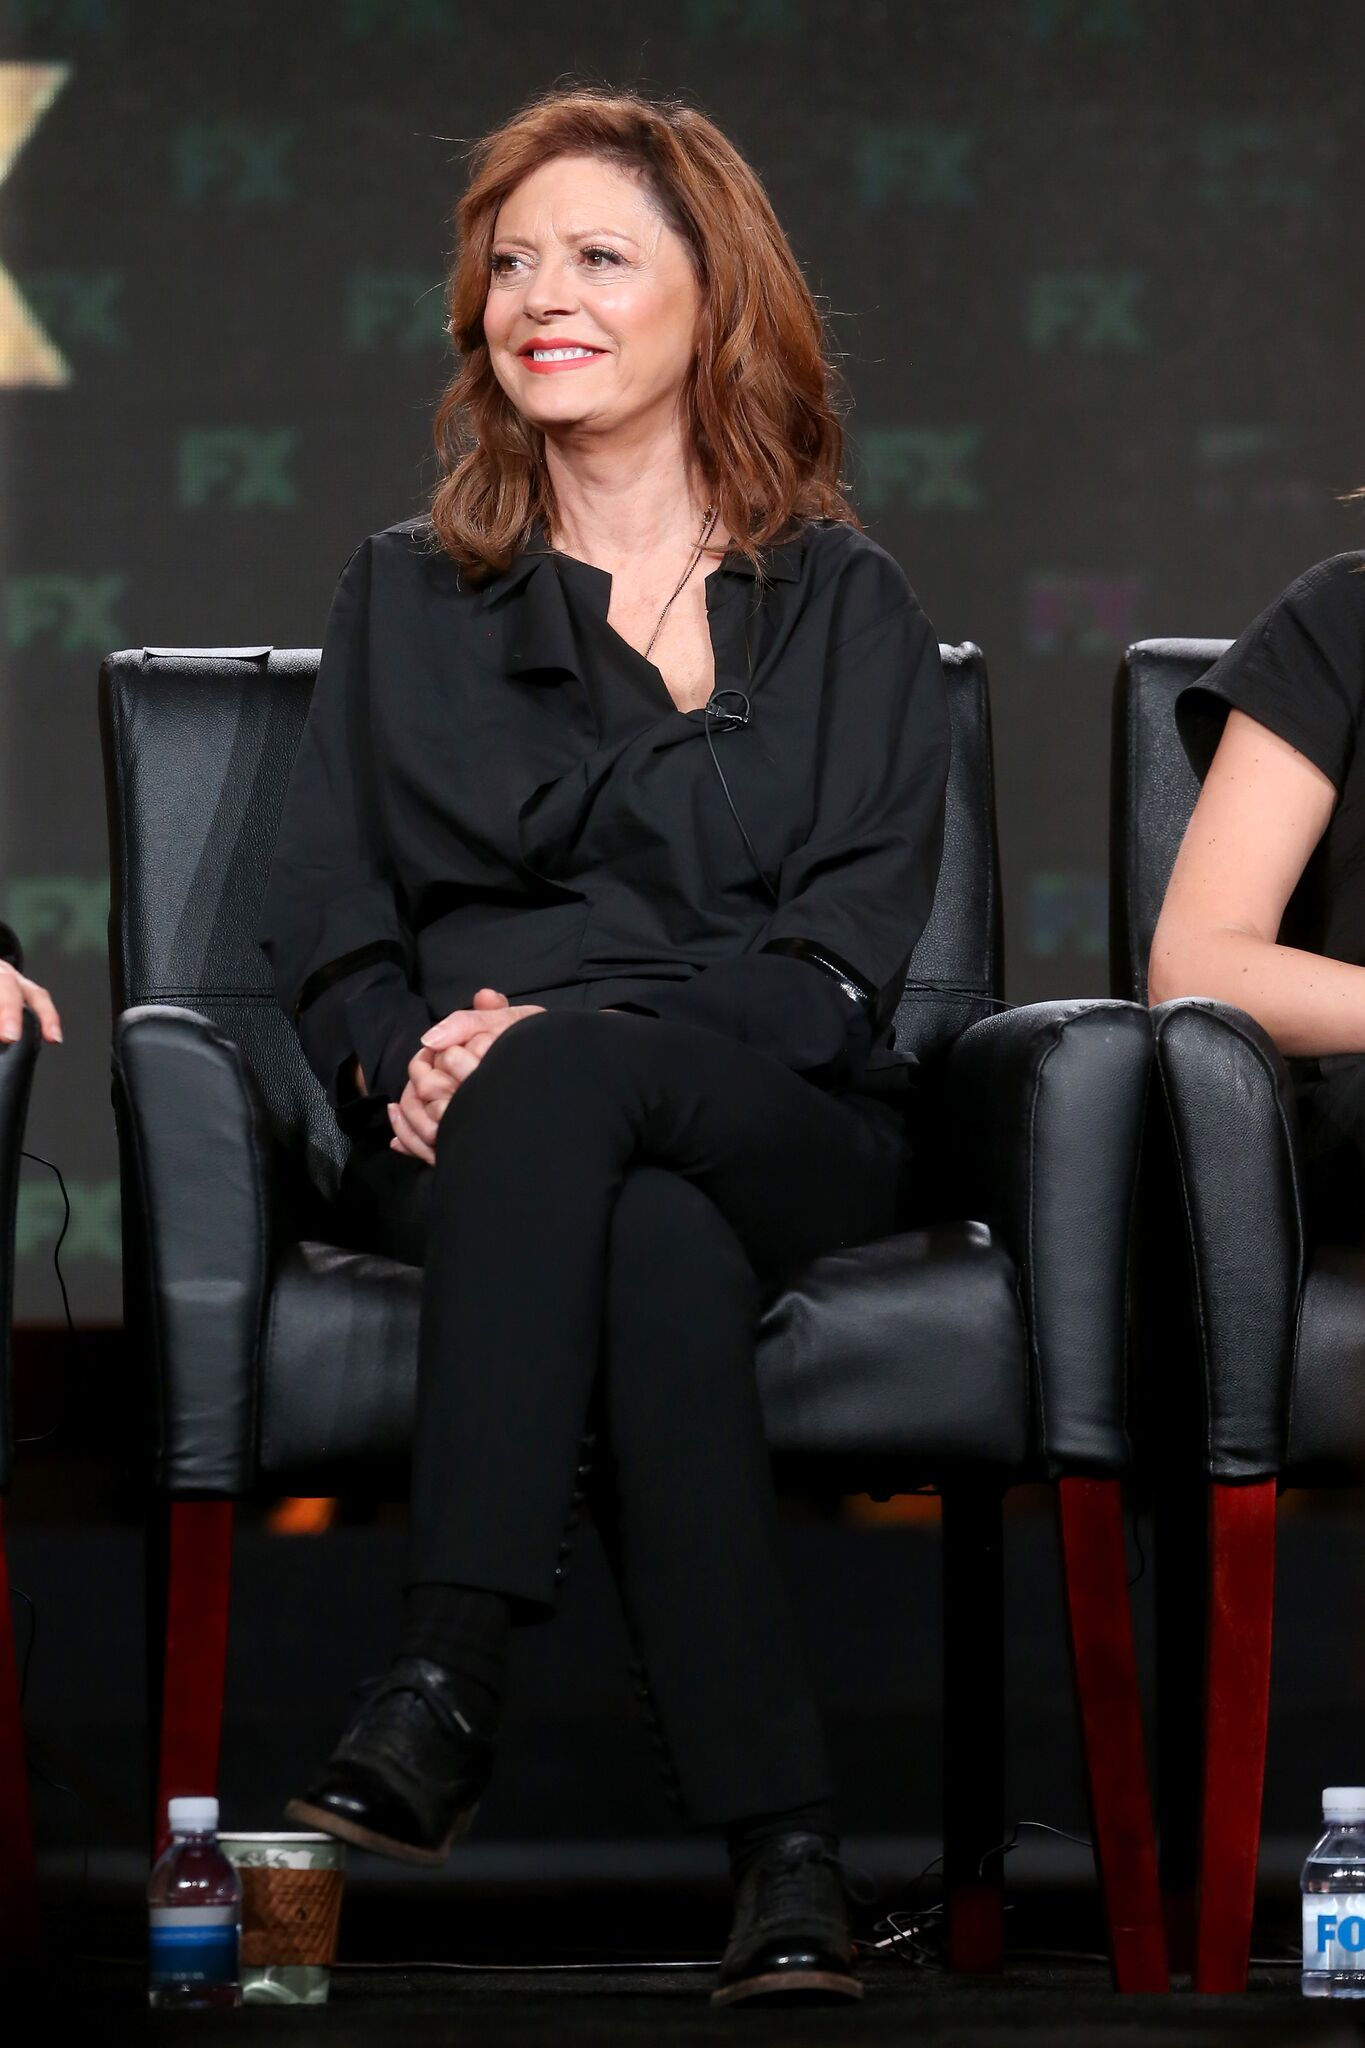 ctress Susan Sarandon of the television show 'Feud' speaks onstage during the FX portion of the 2017 Winter Television Critics Association Press Tour | Getty Images / Global Images Ukraine